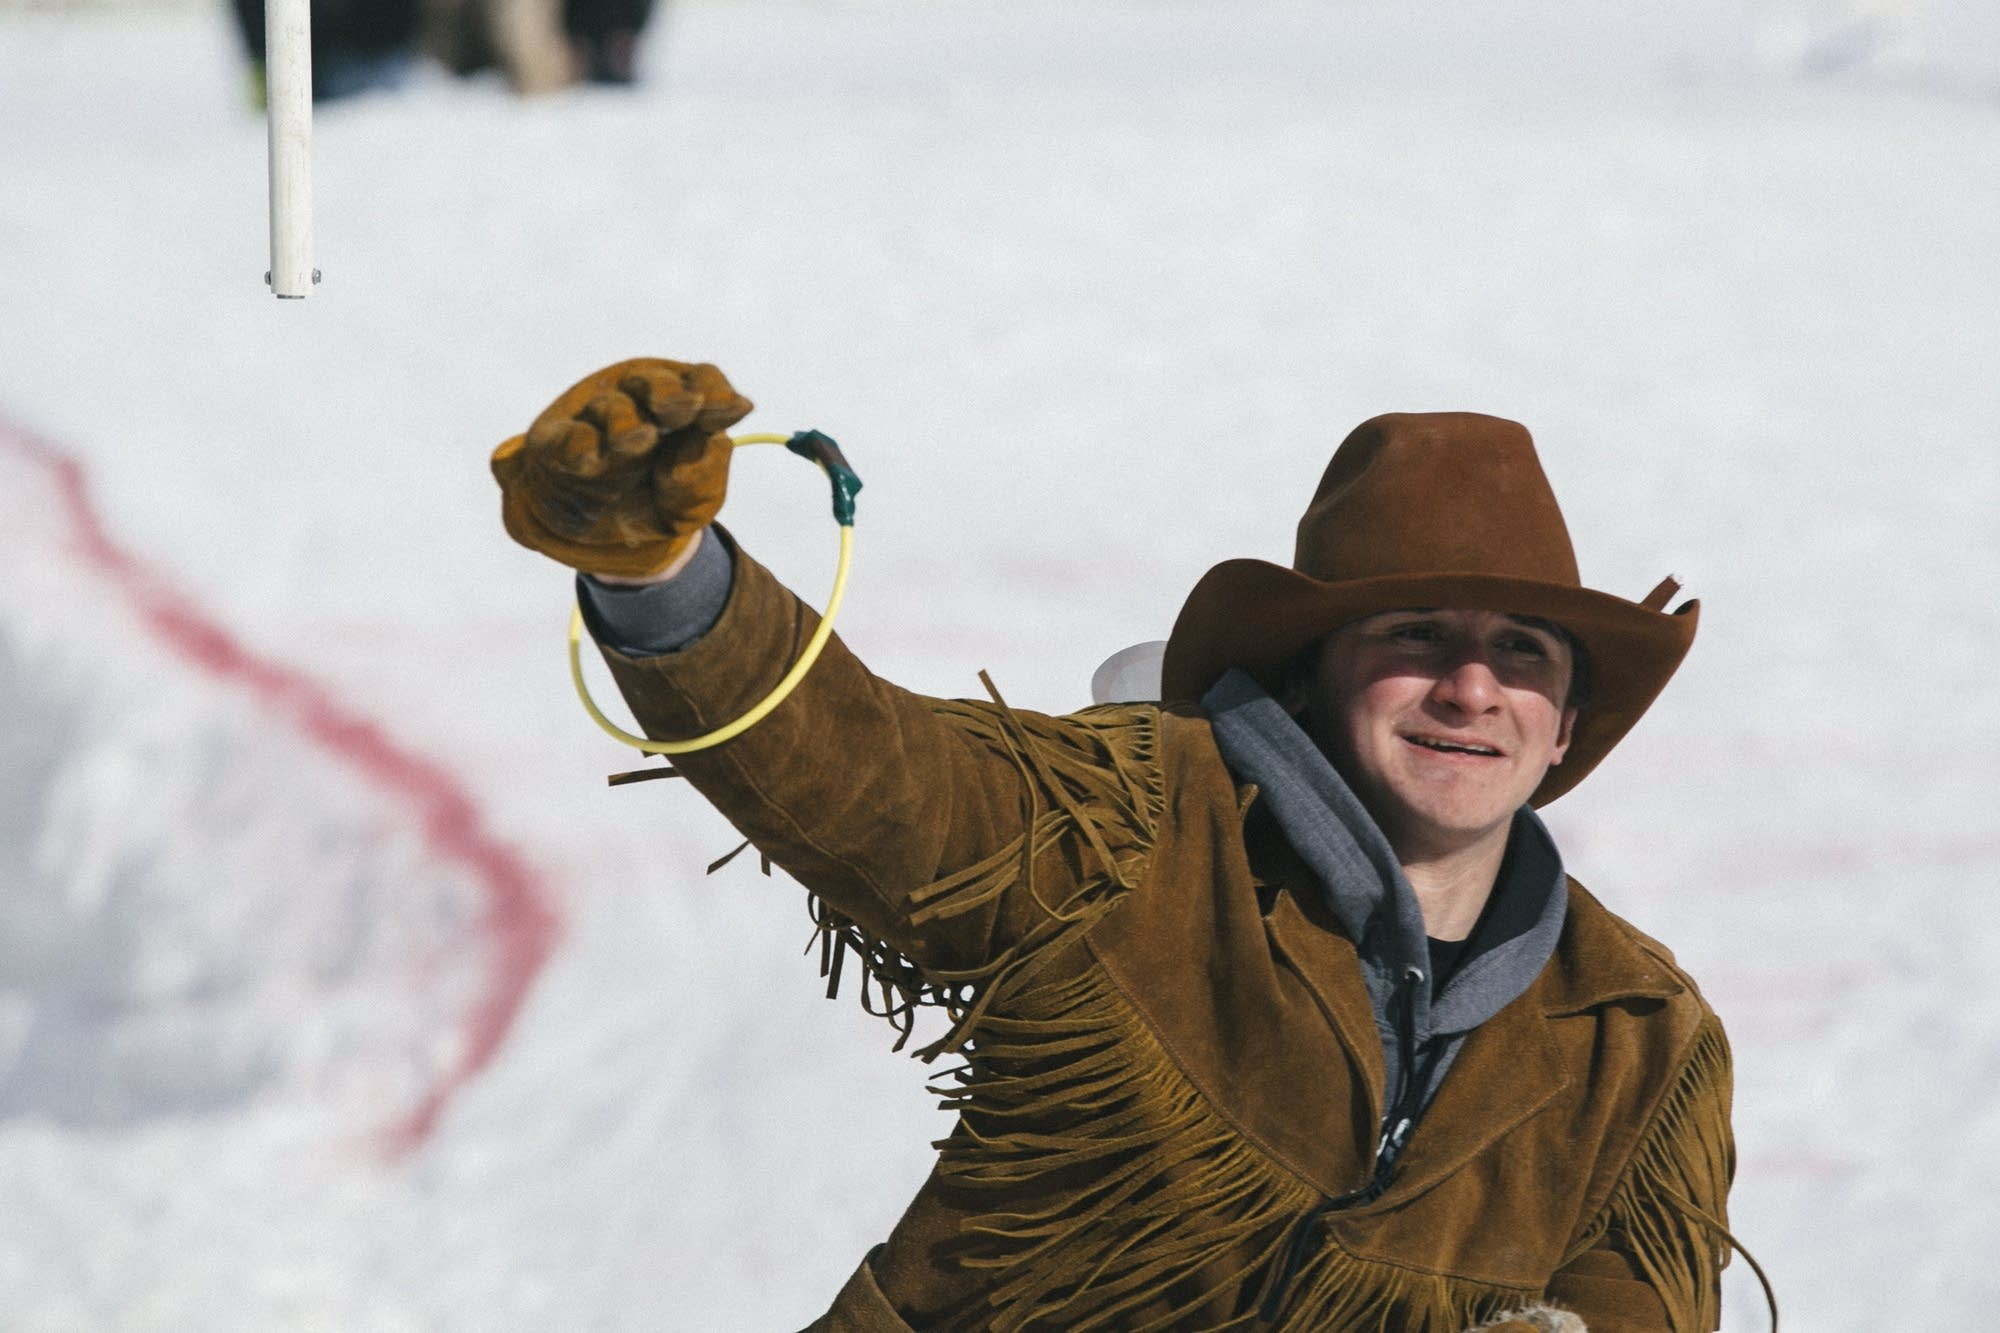 Dakota Morris reaches up to grab one of rings that skiers must collect.